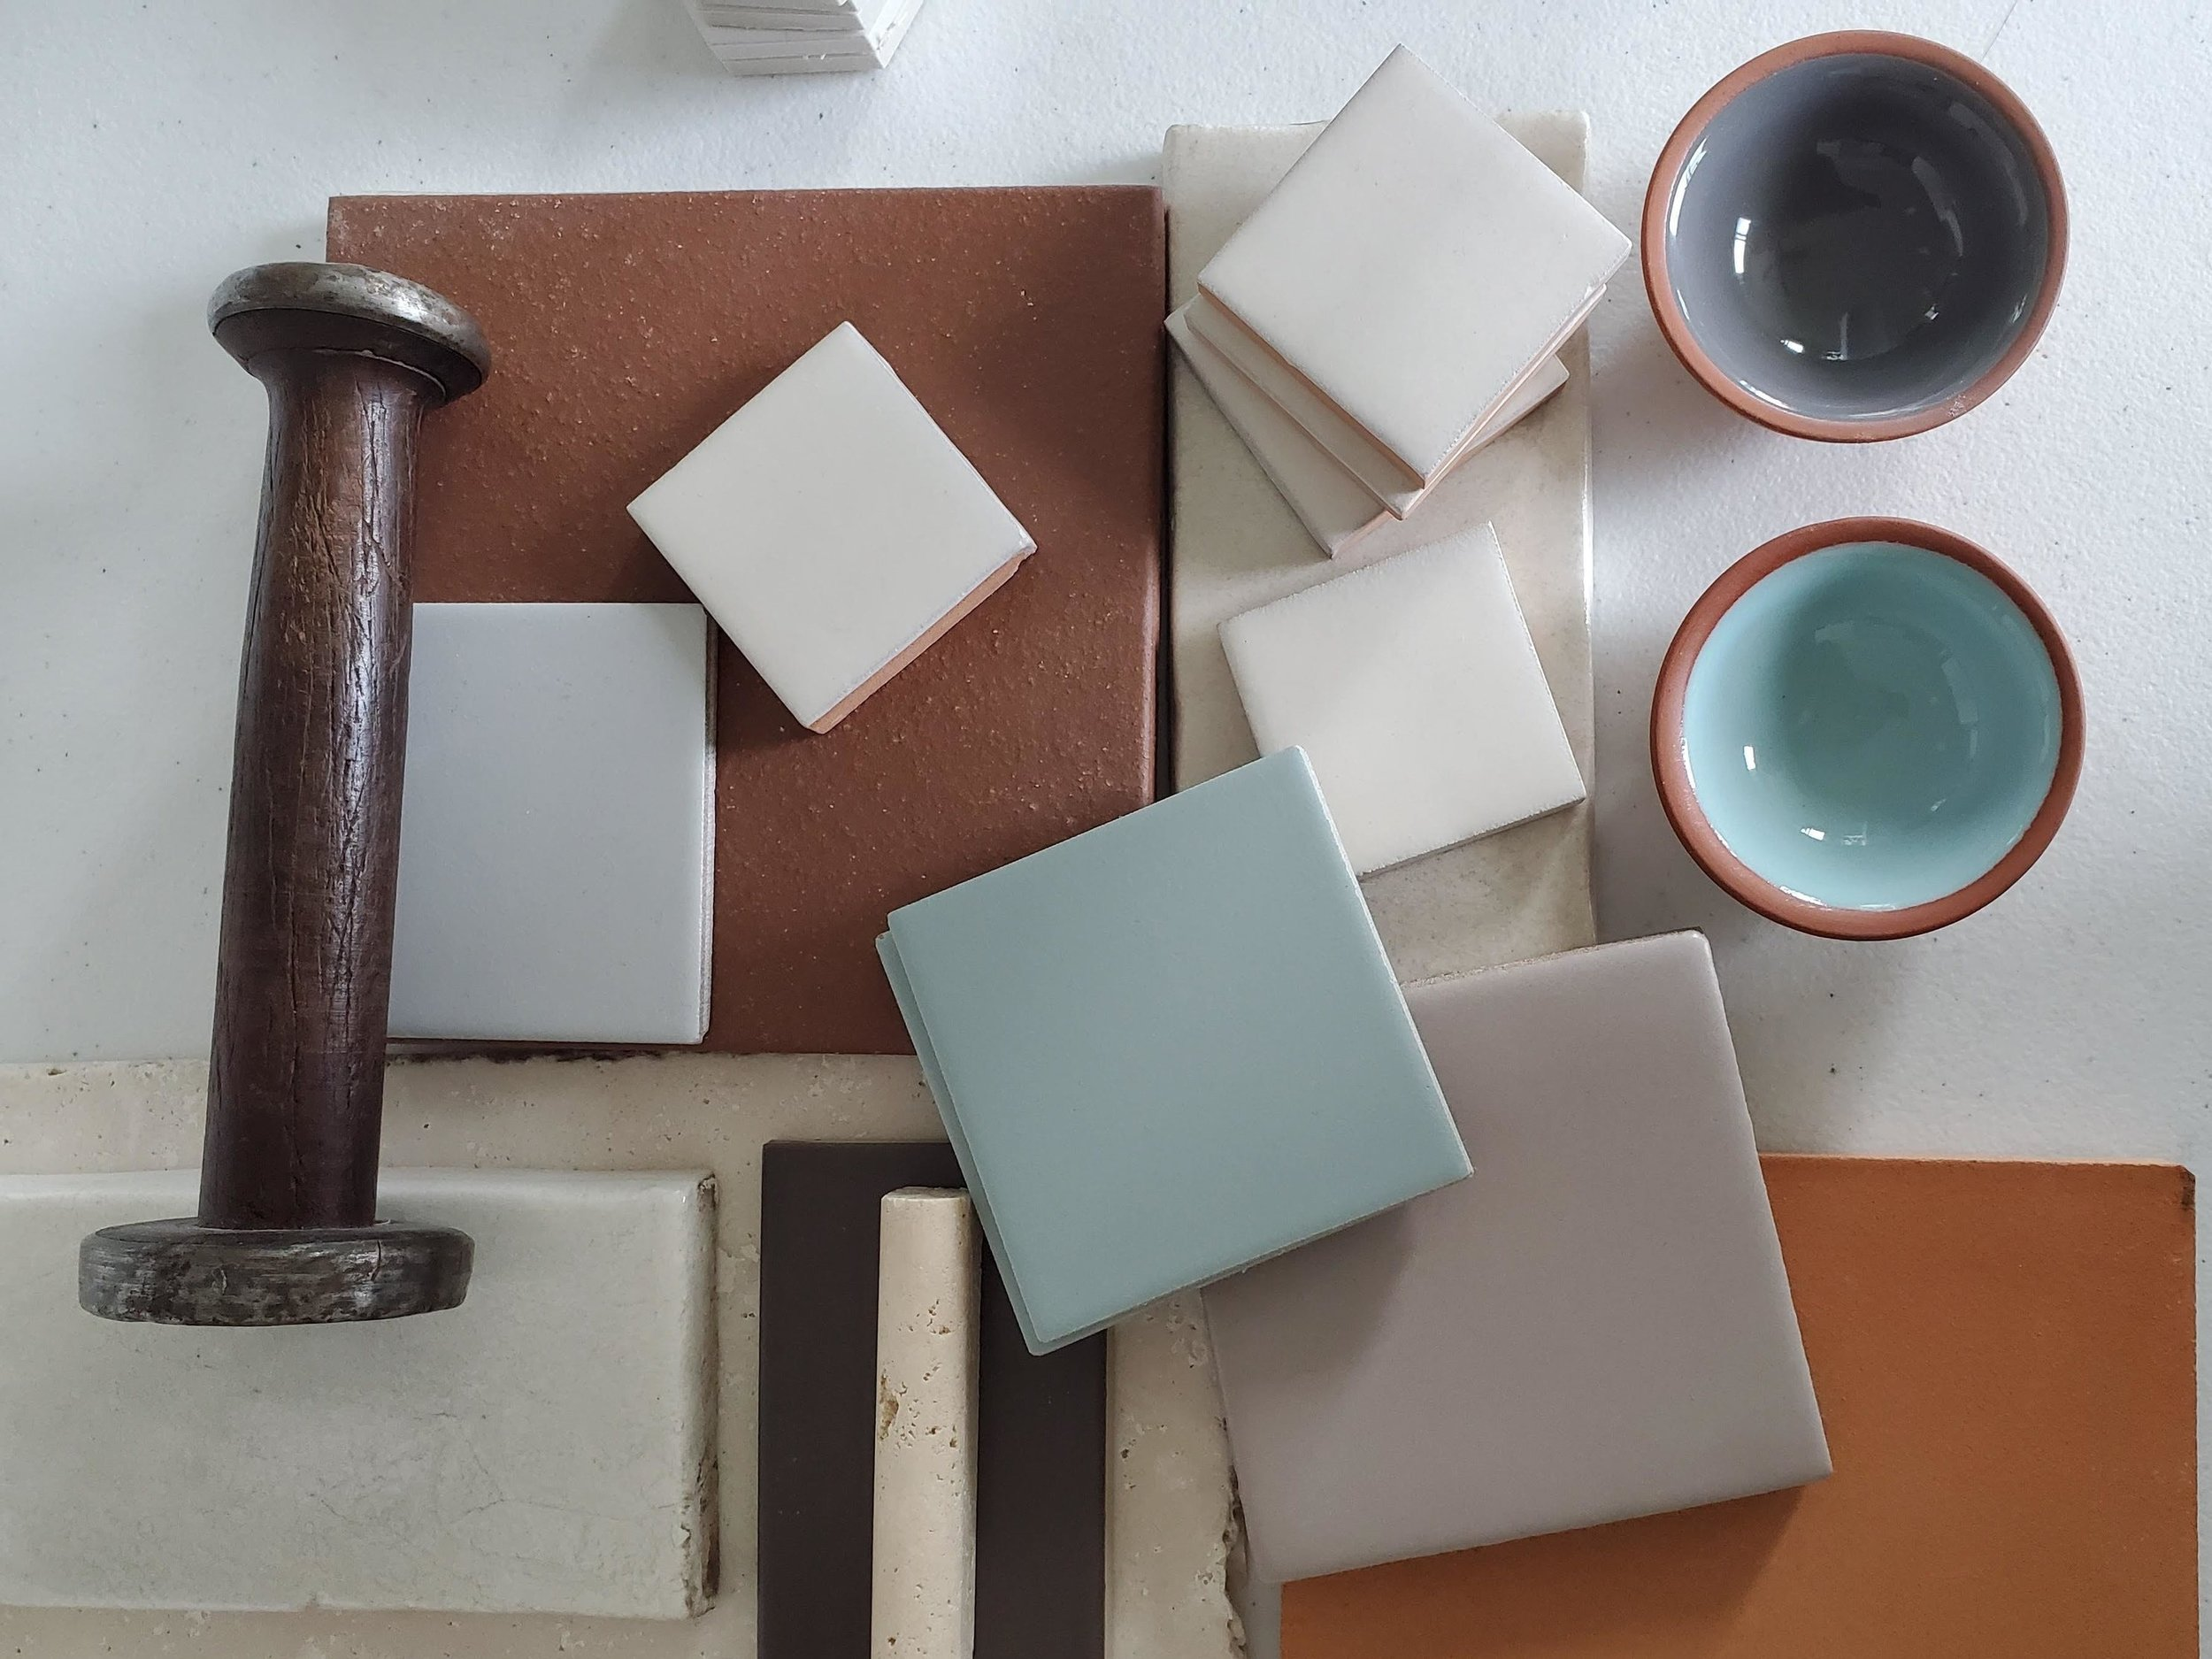 Sam had been sourcing old tiles for a photo shoot and decided they would be the perfect color scheme for her table in their shared booth.